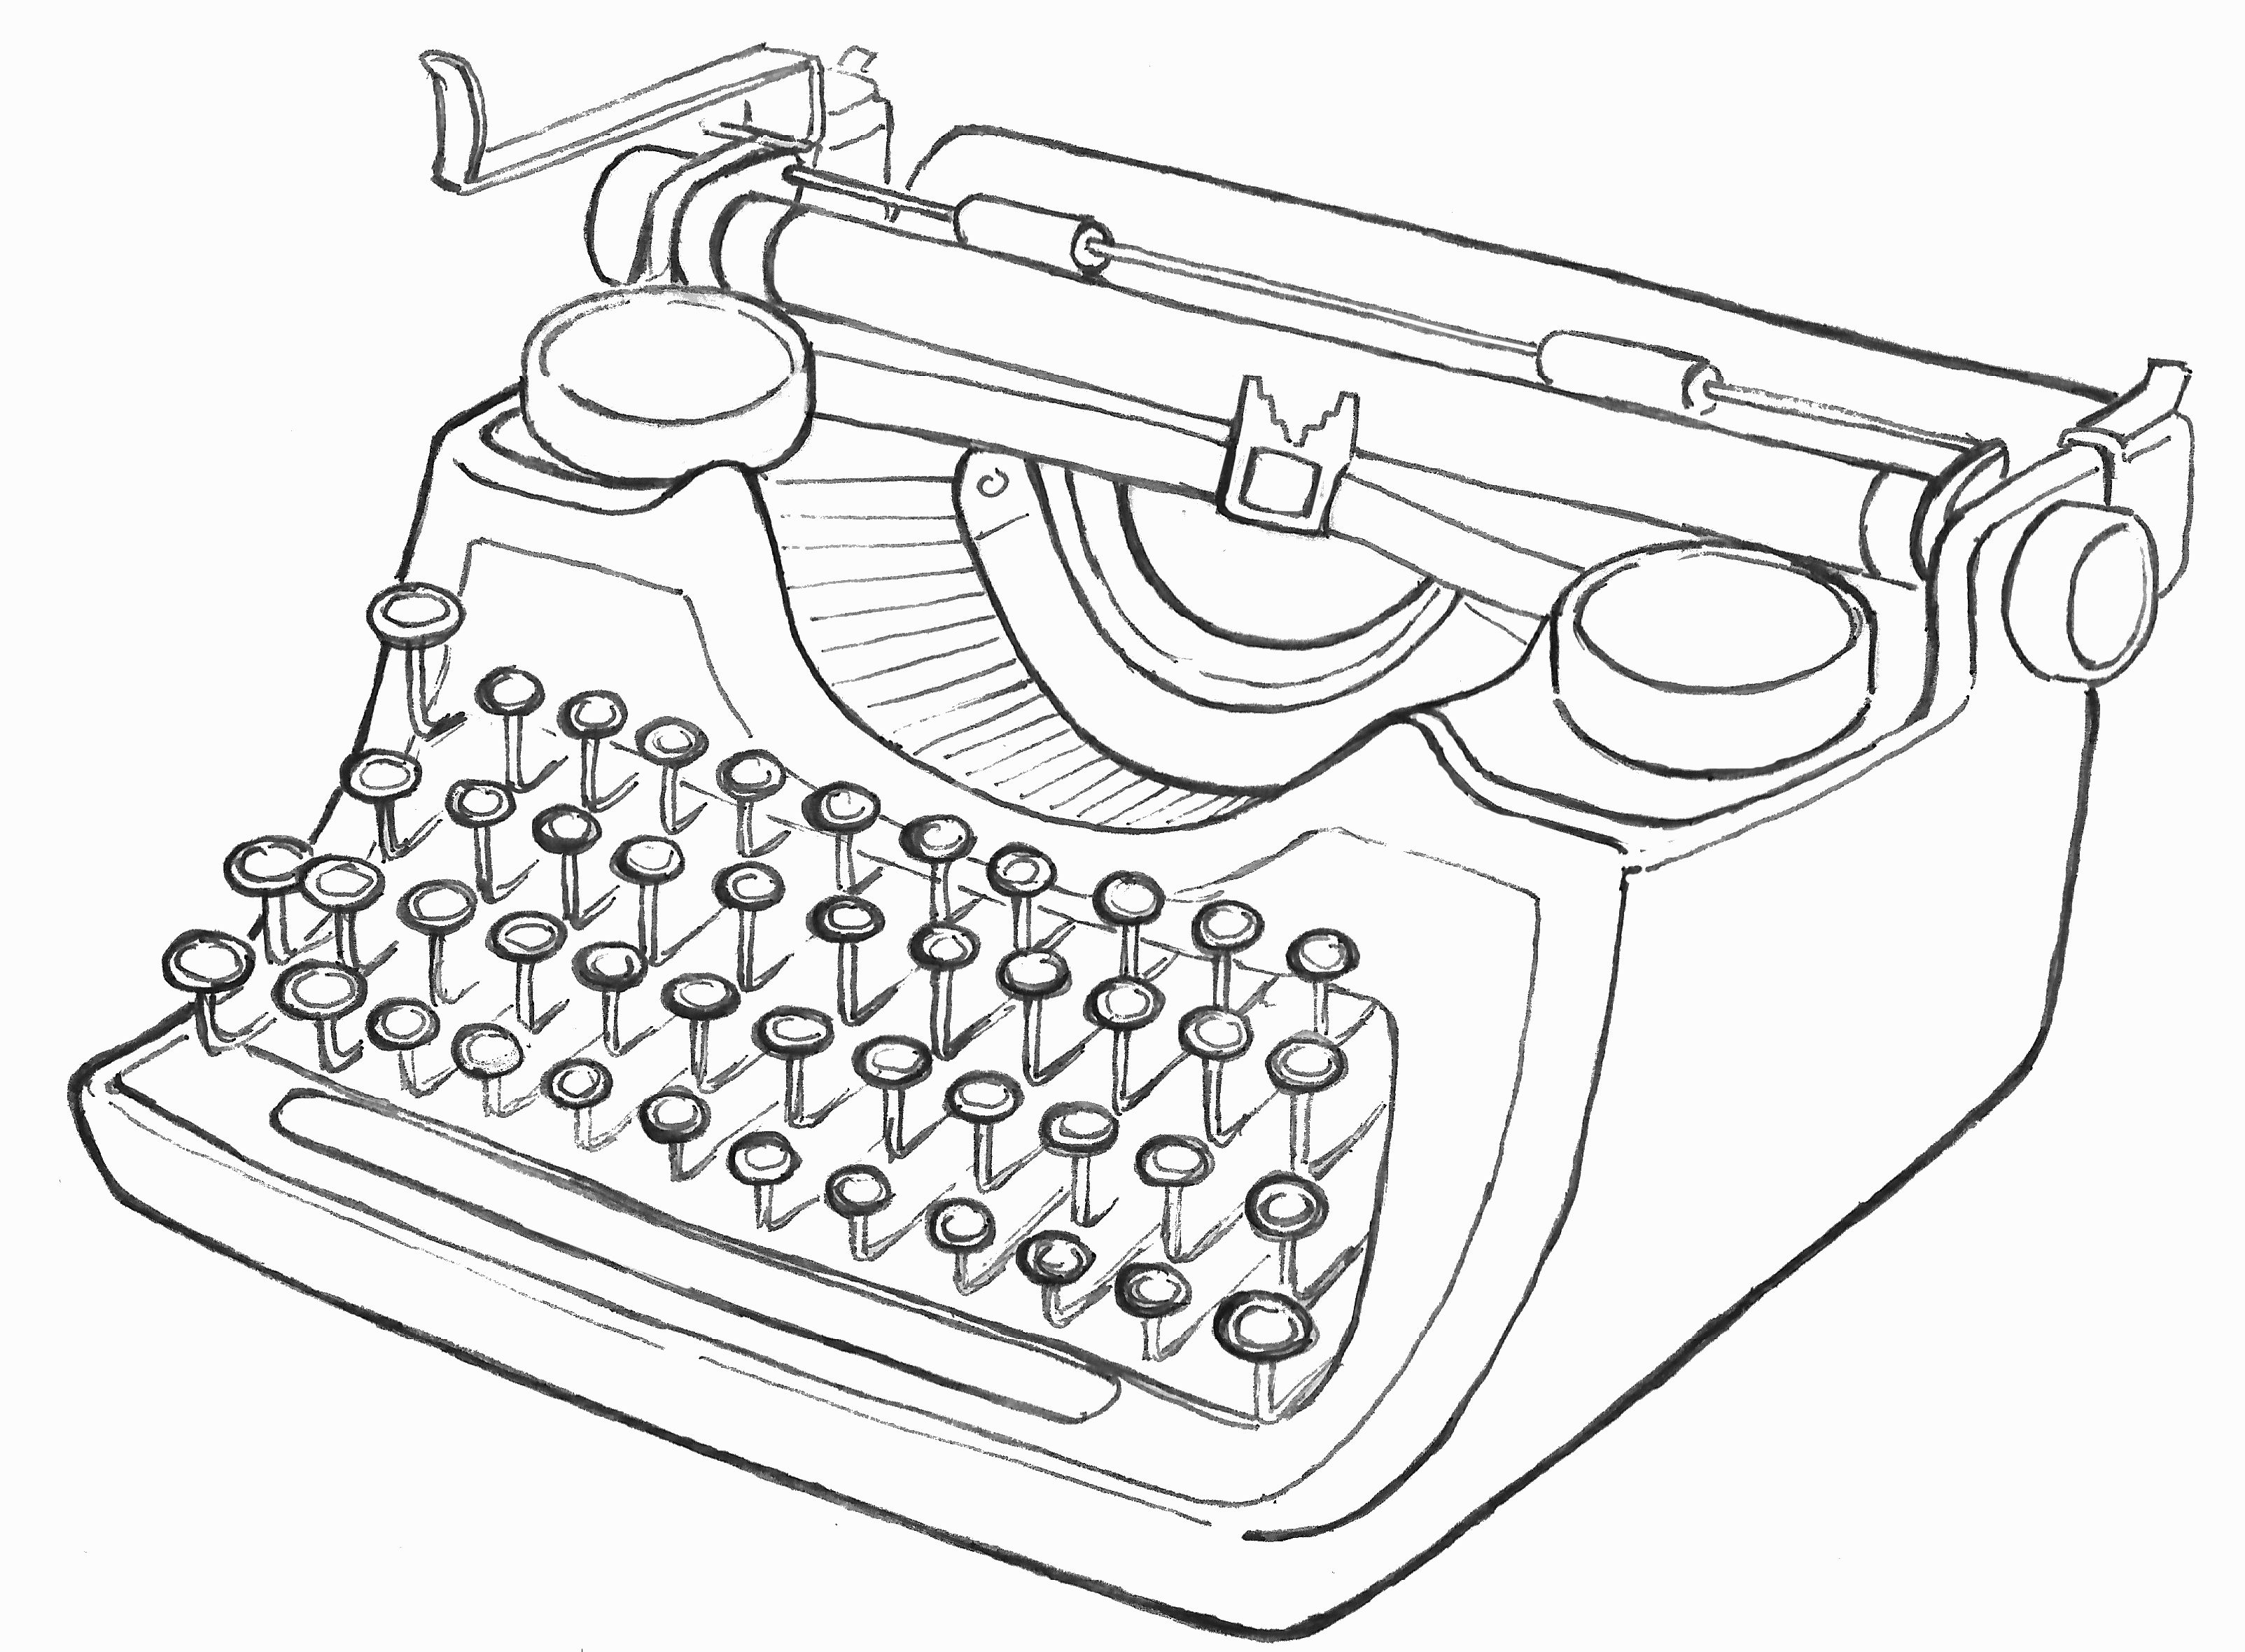 typing and coloring pages | Typewriter Illustration | Infinite Images | Pinterest ...